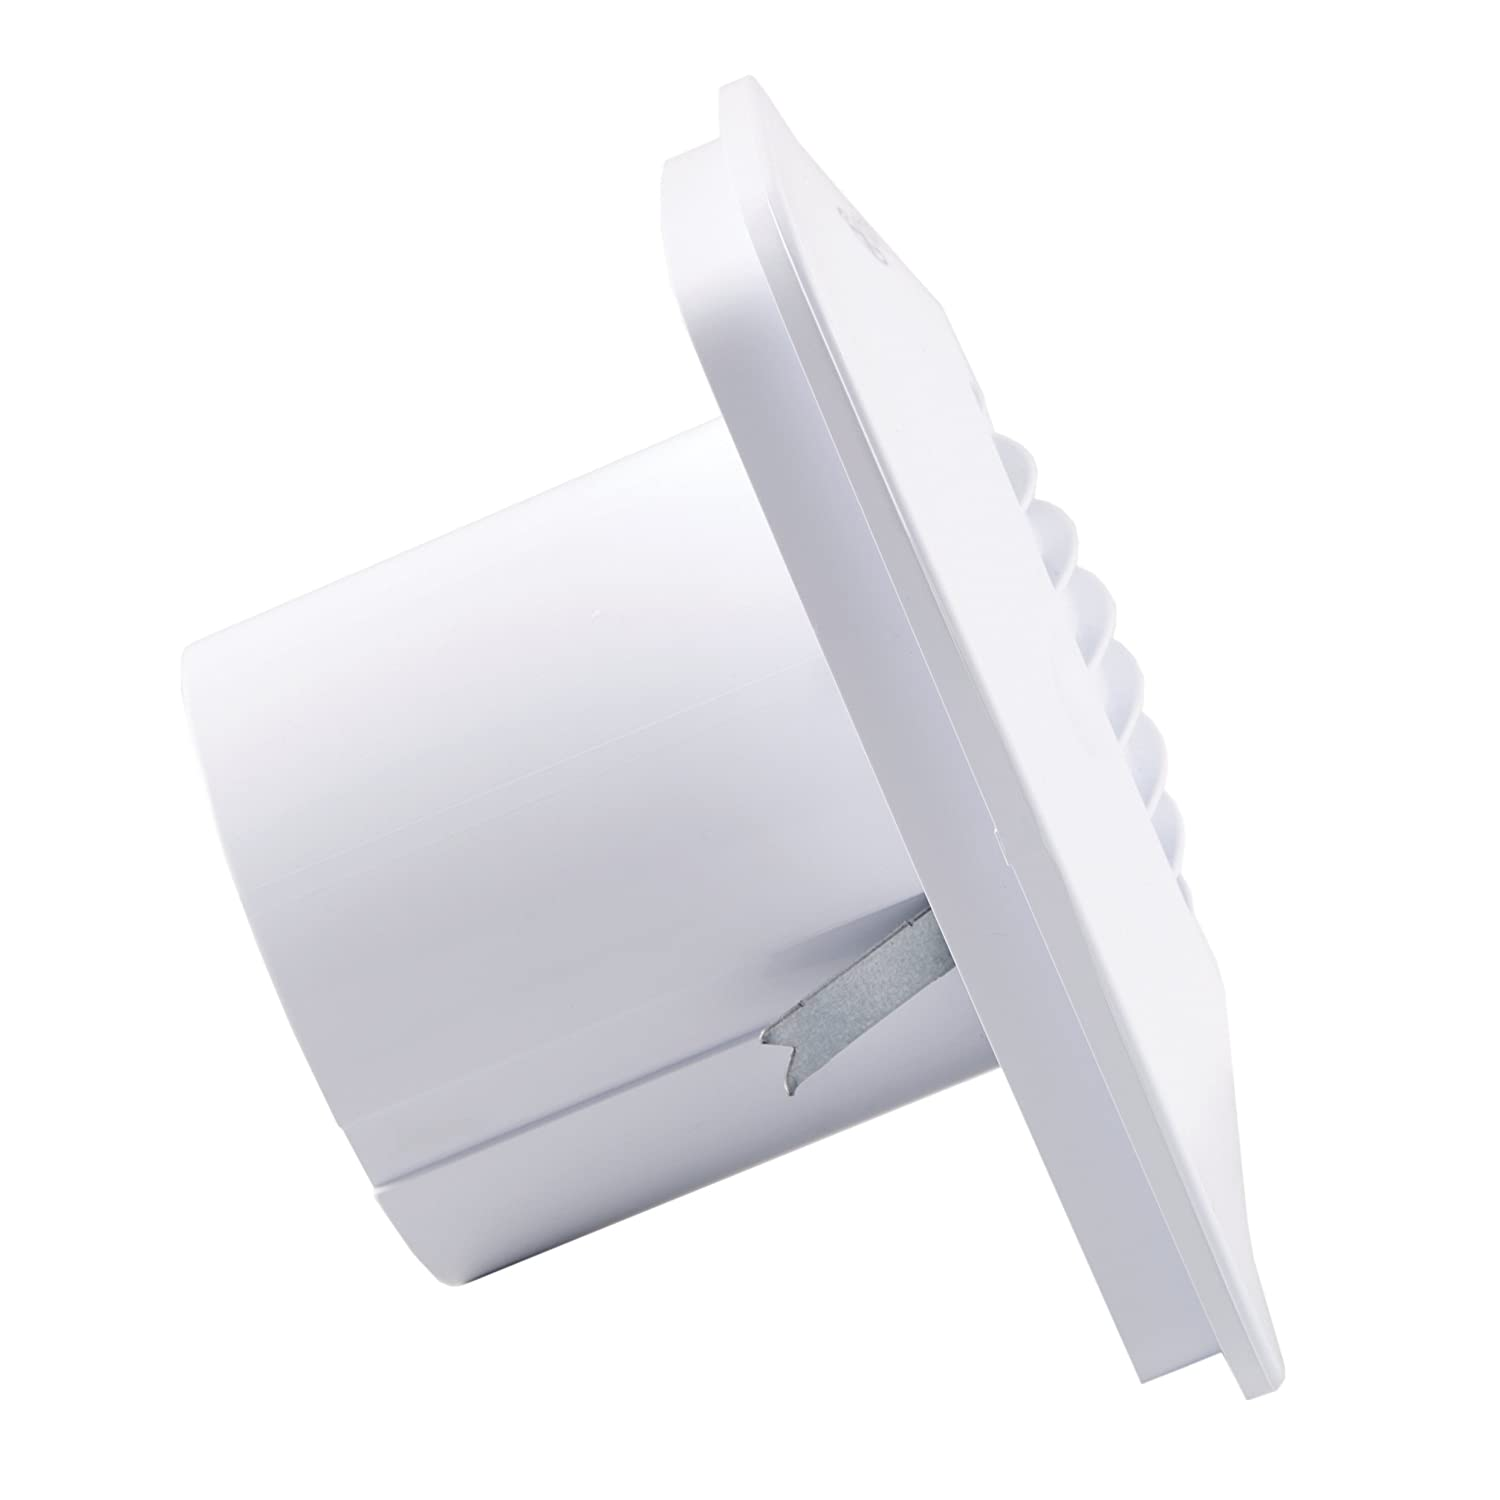 Cool White Xpelair DX100BS 4-Inch Standard Square Bathroom Fan